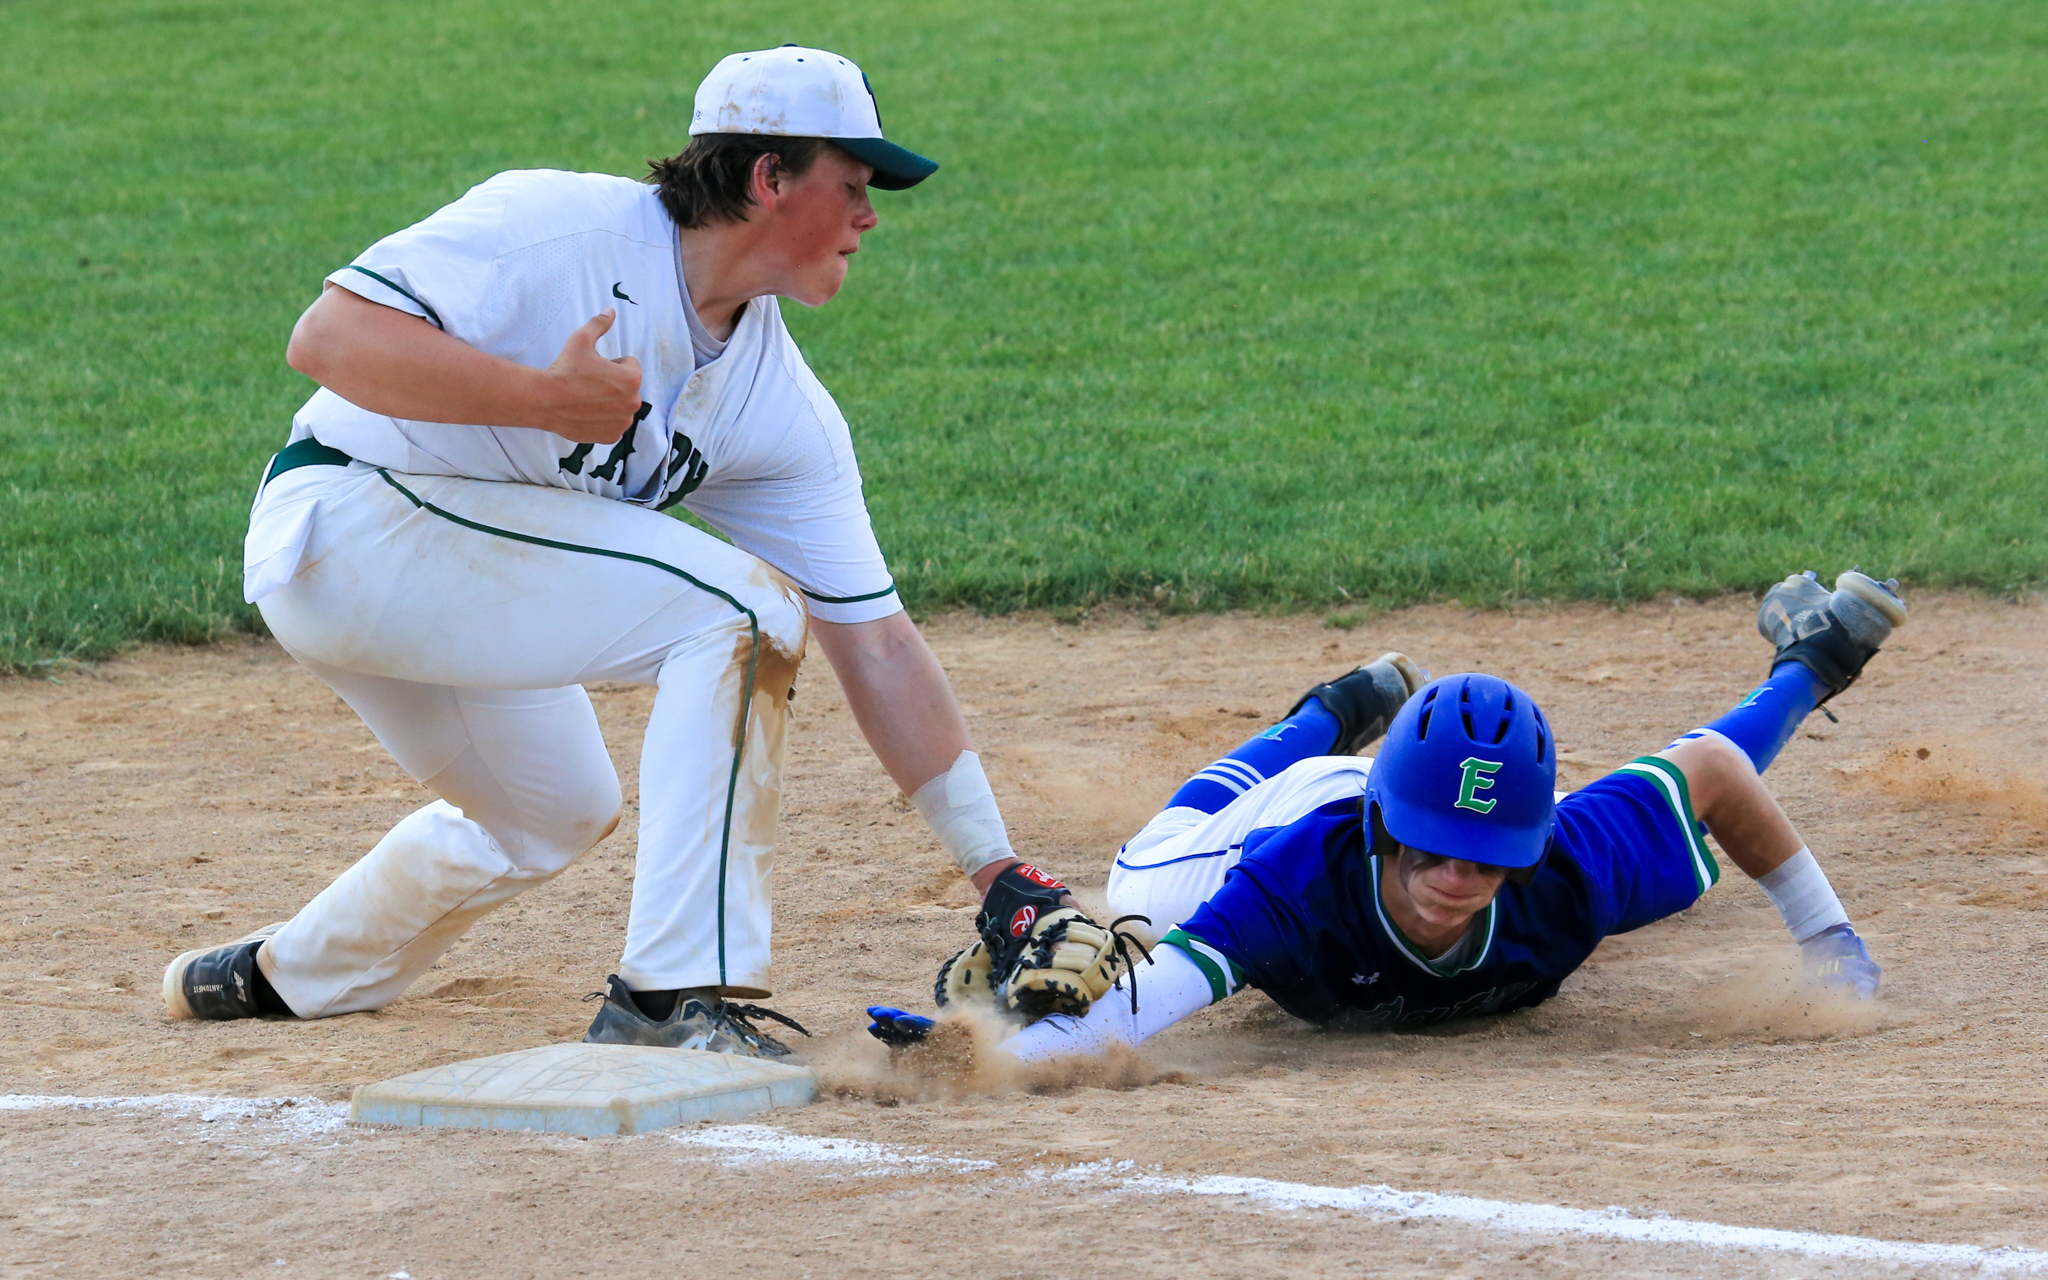 Park of Cottage Grove's Will Smoot applies the tag to catch Eagan's Liam Martin on a pickoff play early in Game 1 of the Class 4A, Section 3 final. The Wolfpack defeated the Wildcats 5-0 to force a second game. Photo by Jeff Lawler, SportsEngine